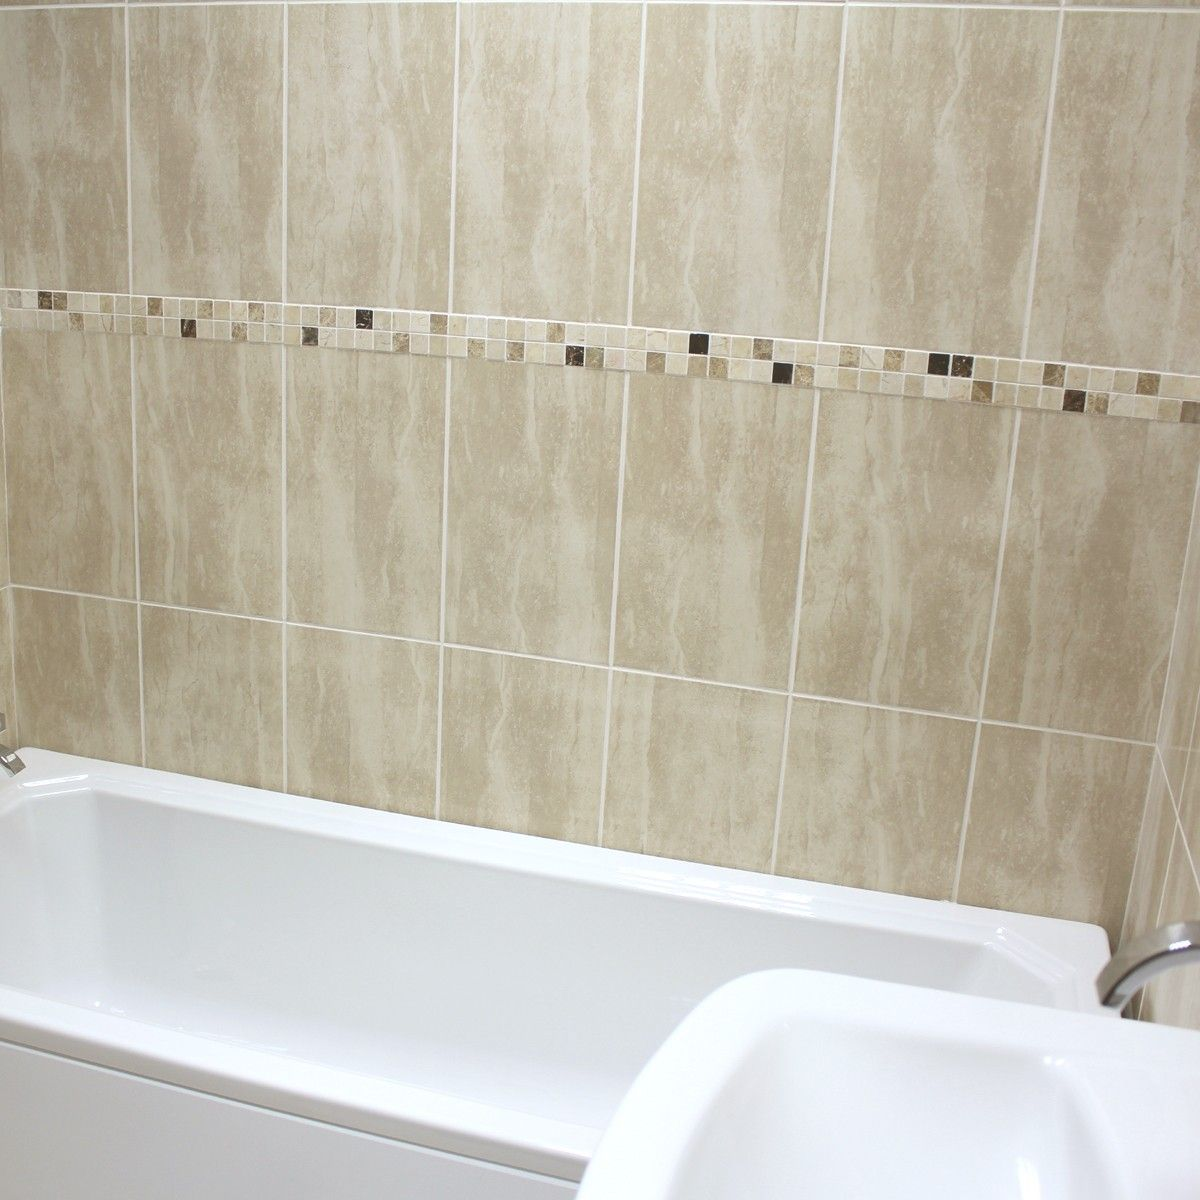 a gloss cream travertine effect ceramic wall tile the palace cream is an ideal size - Bathroom Tiles Cream